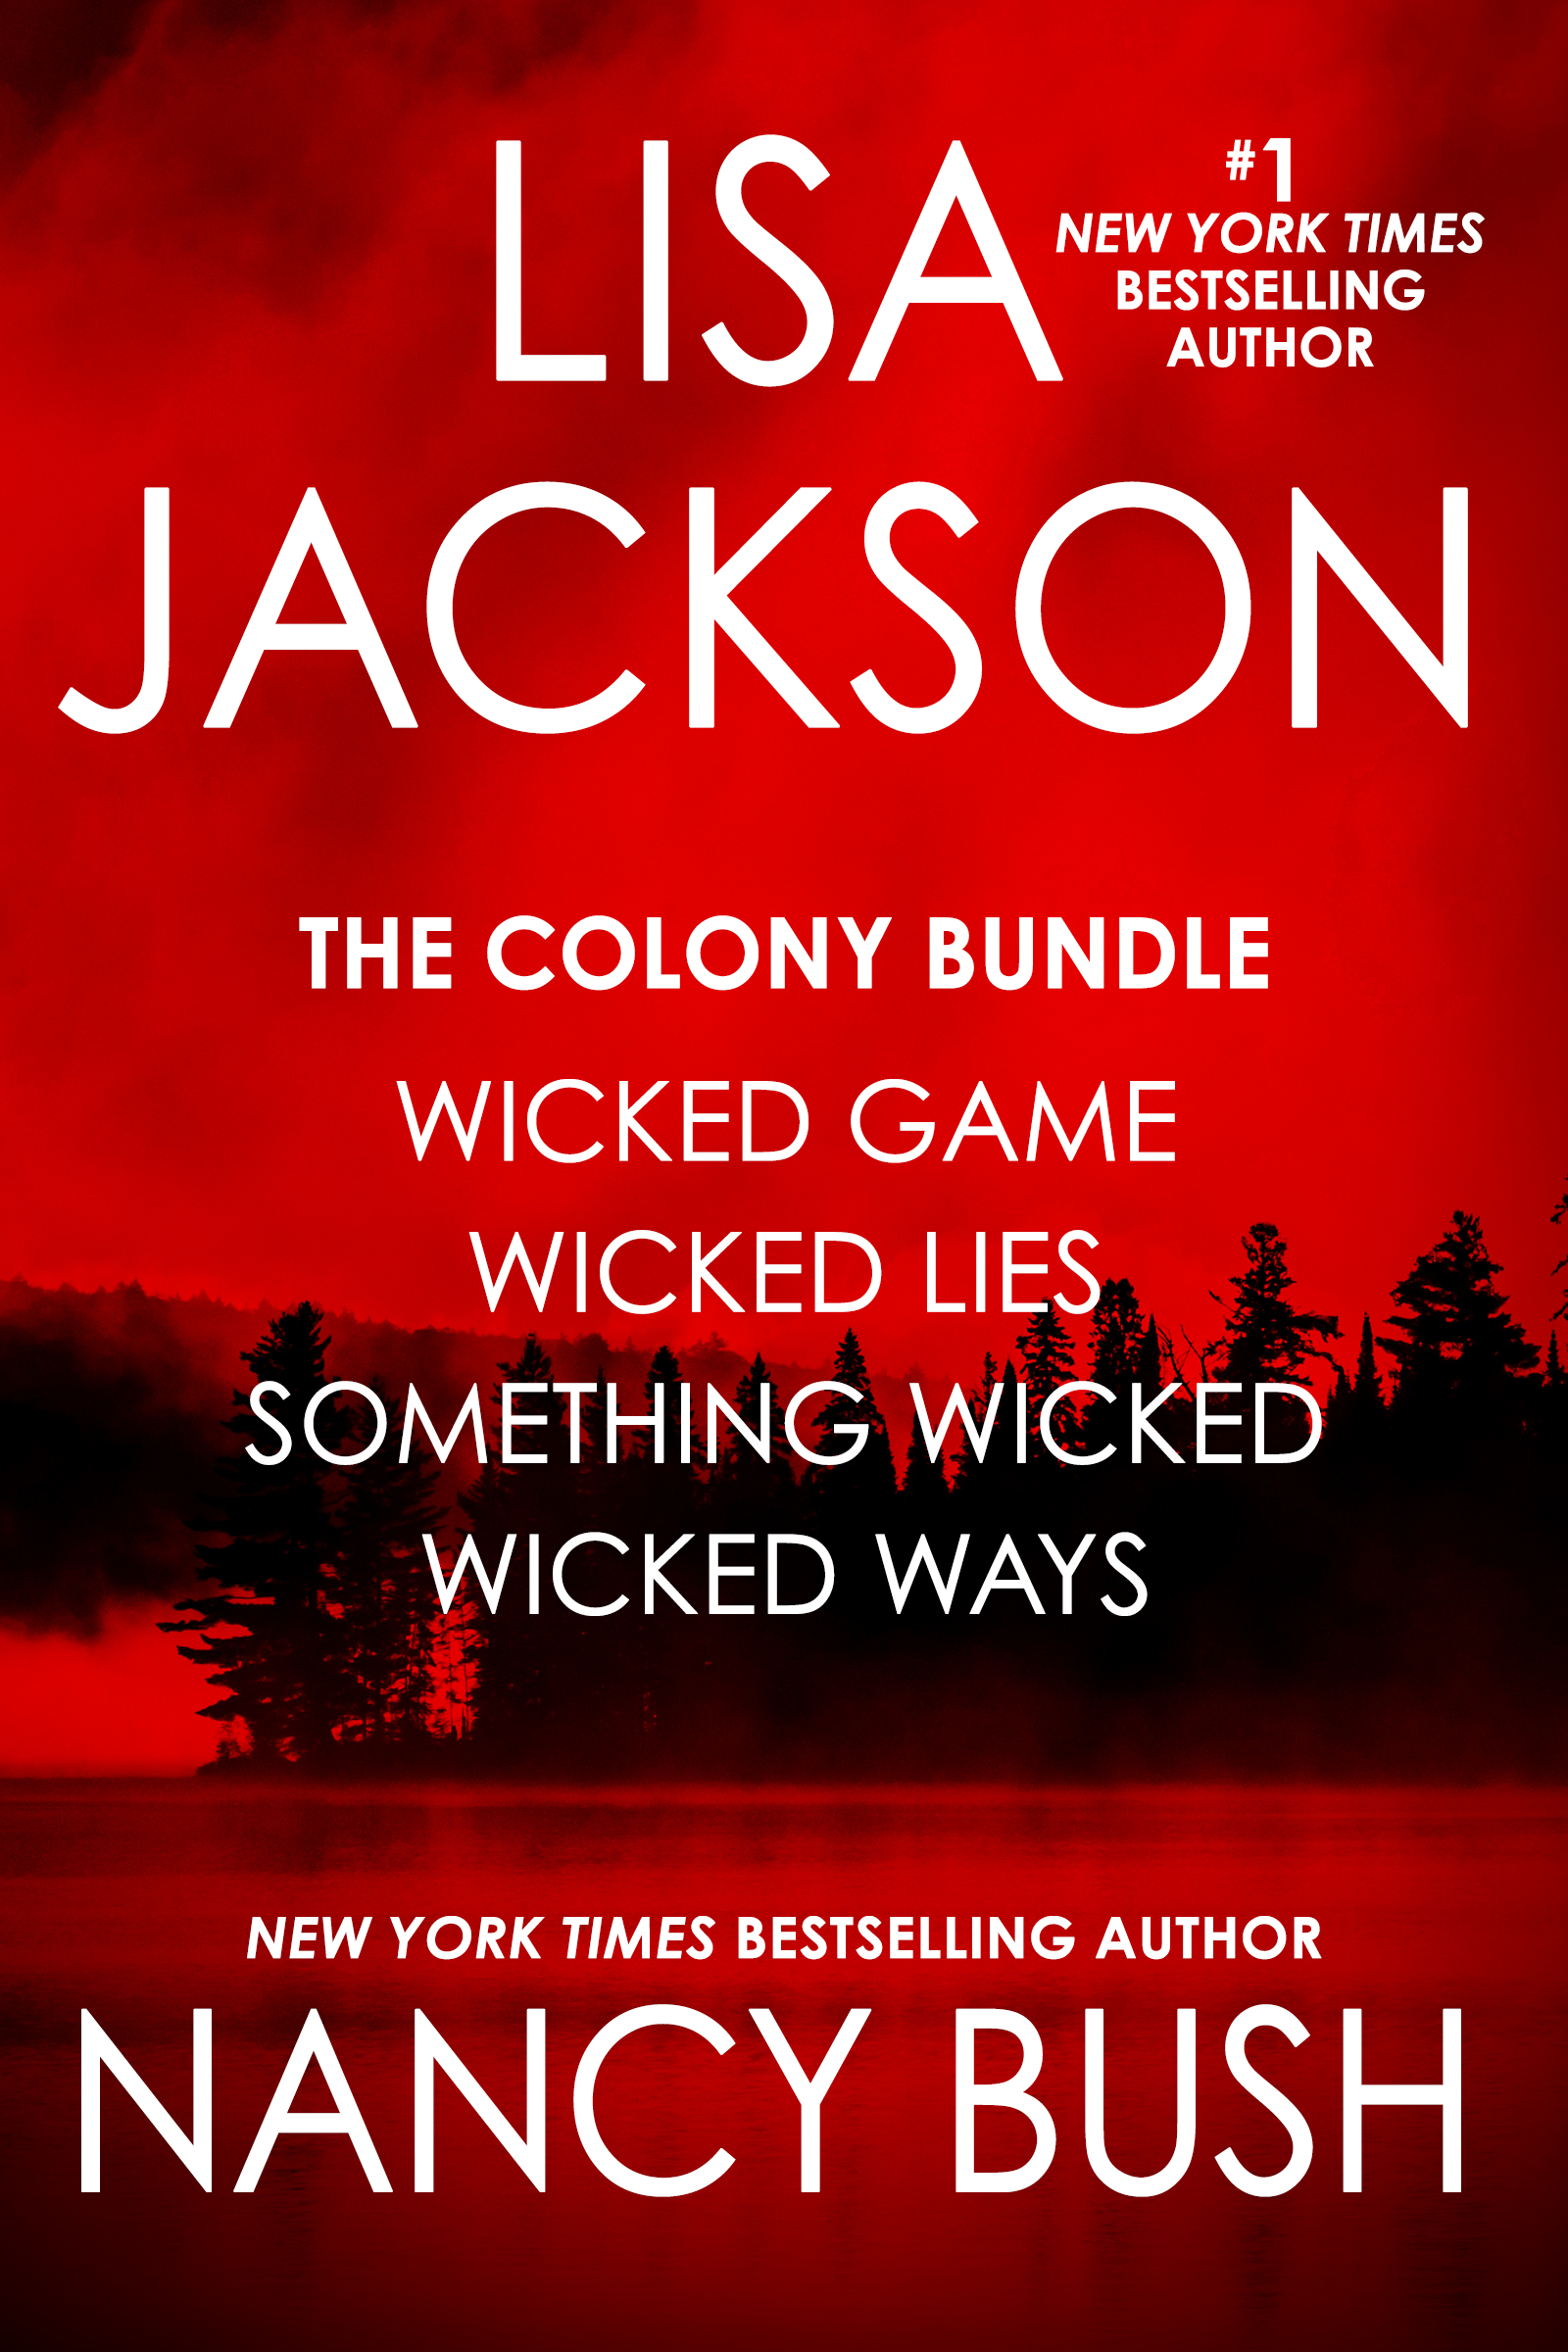 The Complete Colony Series: Books 1-4  (with Lisa Jackson)